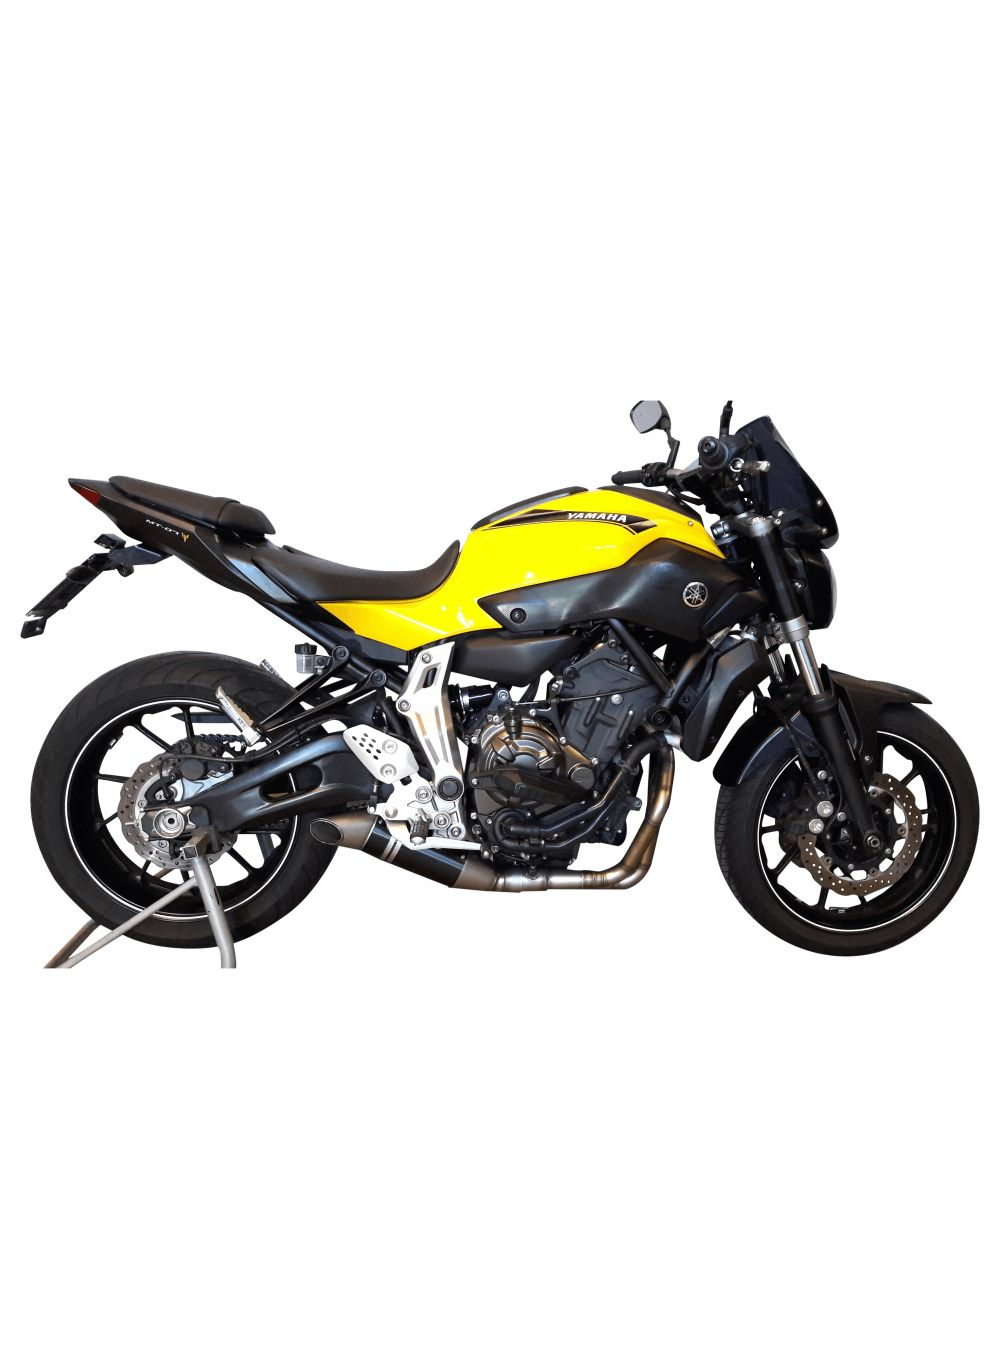 G g gp exhaust system yamaha xsr700 g g shop for Yamaha exhaust systems